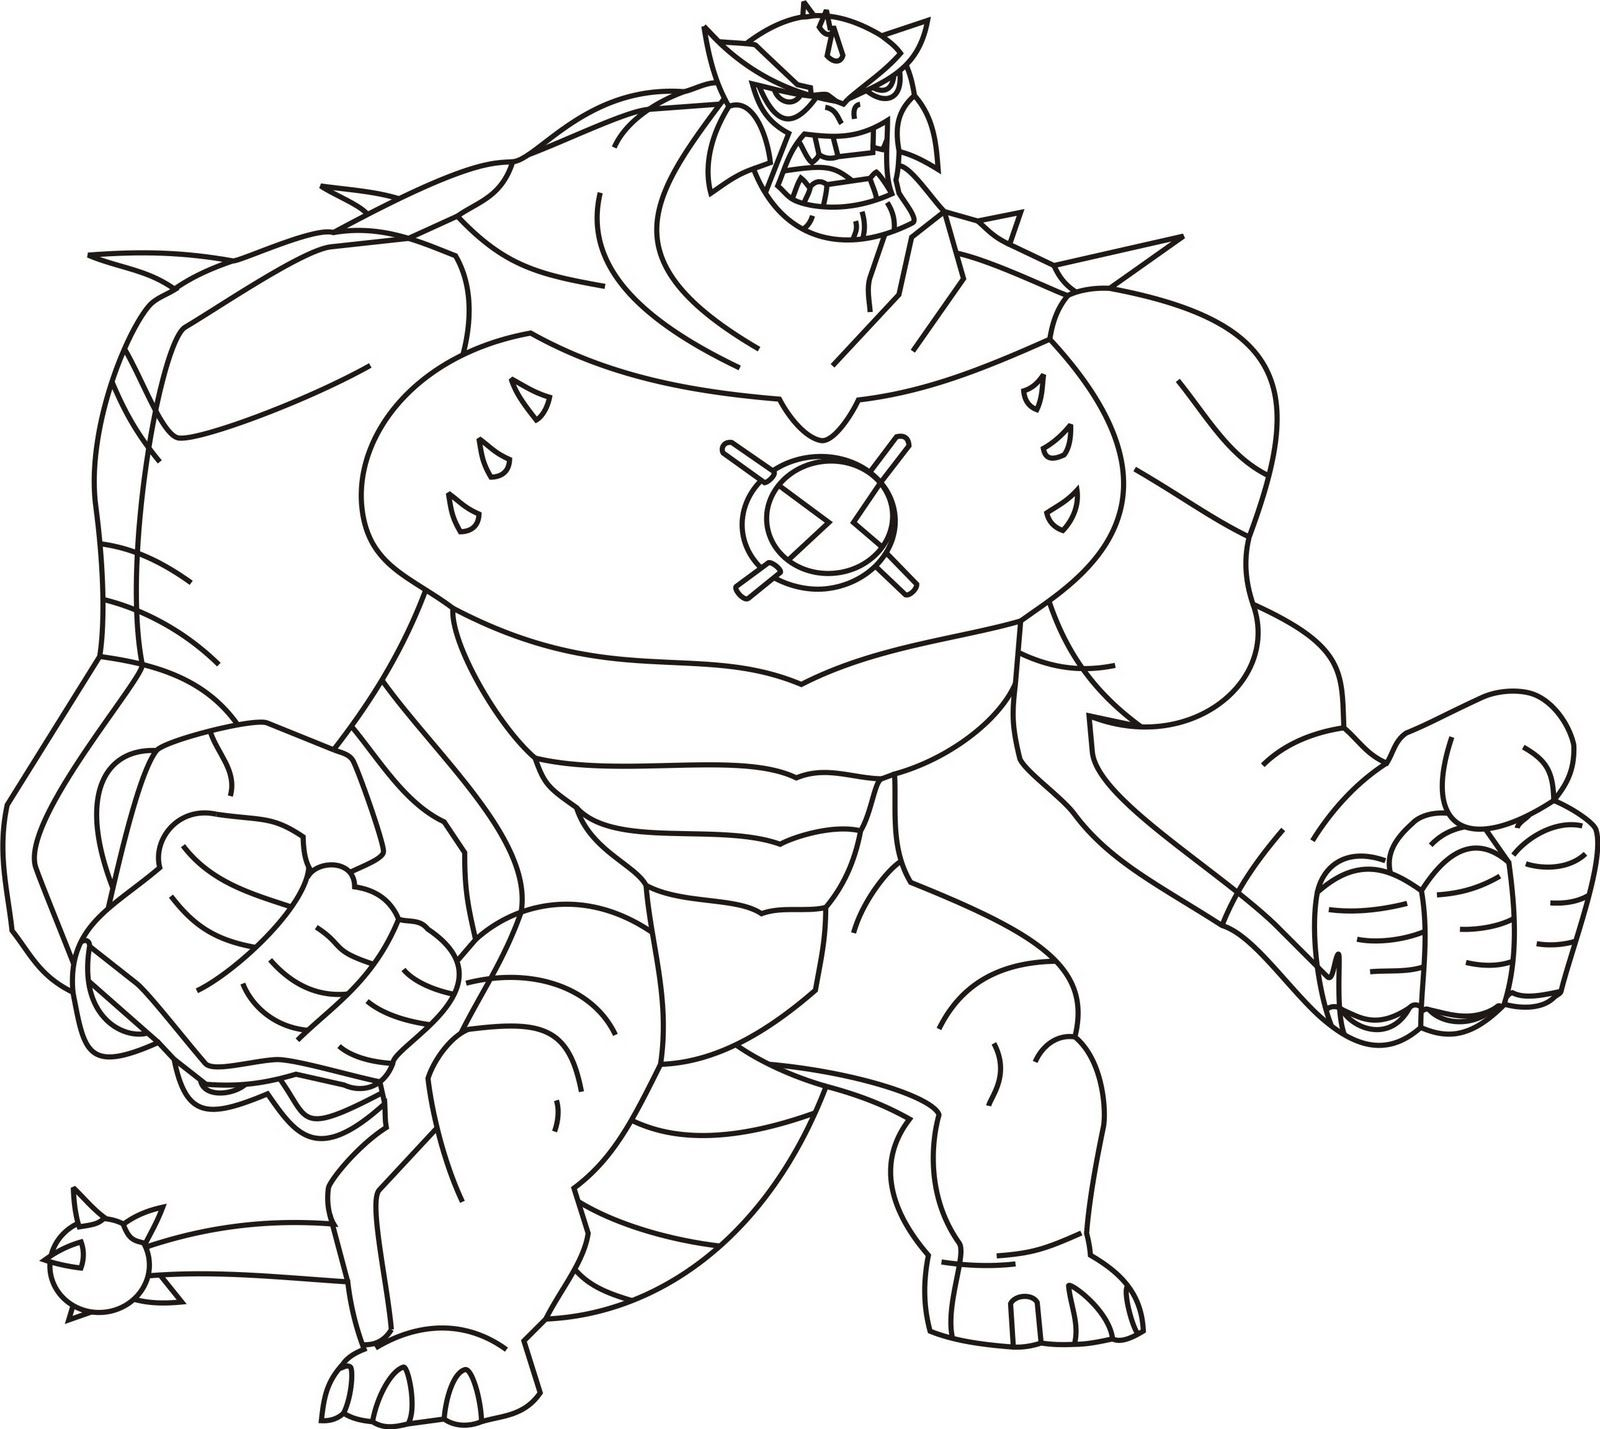 Ben 10 Coloring Pages Ultimate Aliens Only Coloring Pages Ben 10 Para Colorear Ben 10 Fiesta Ben 10